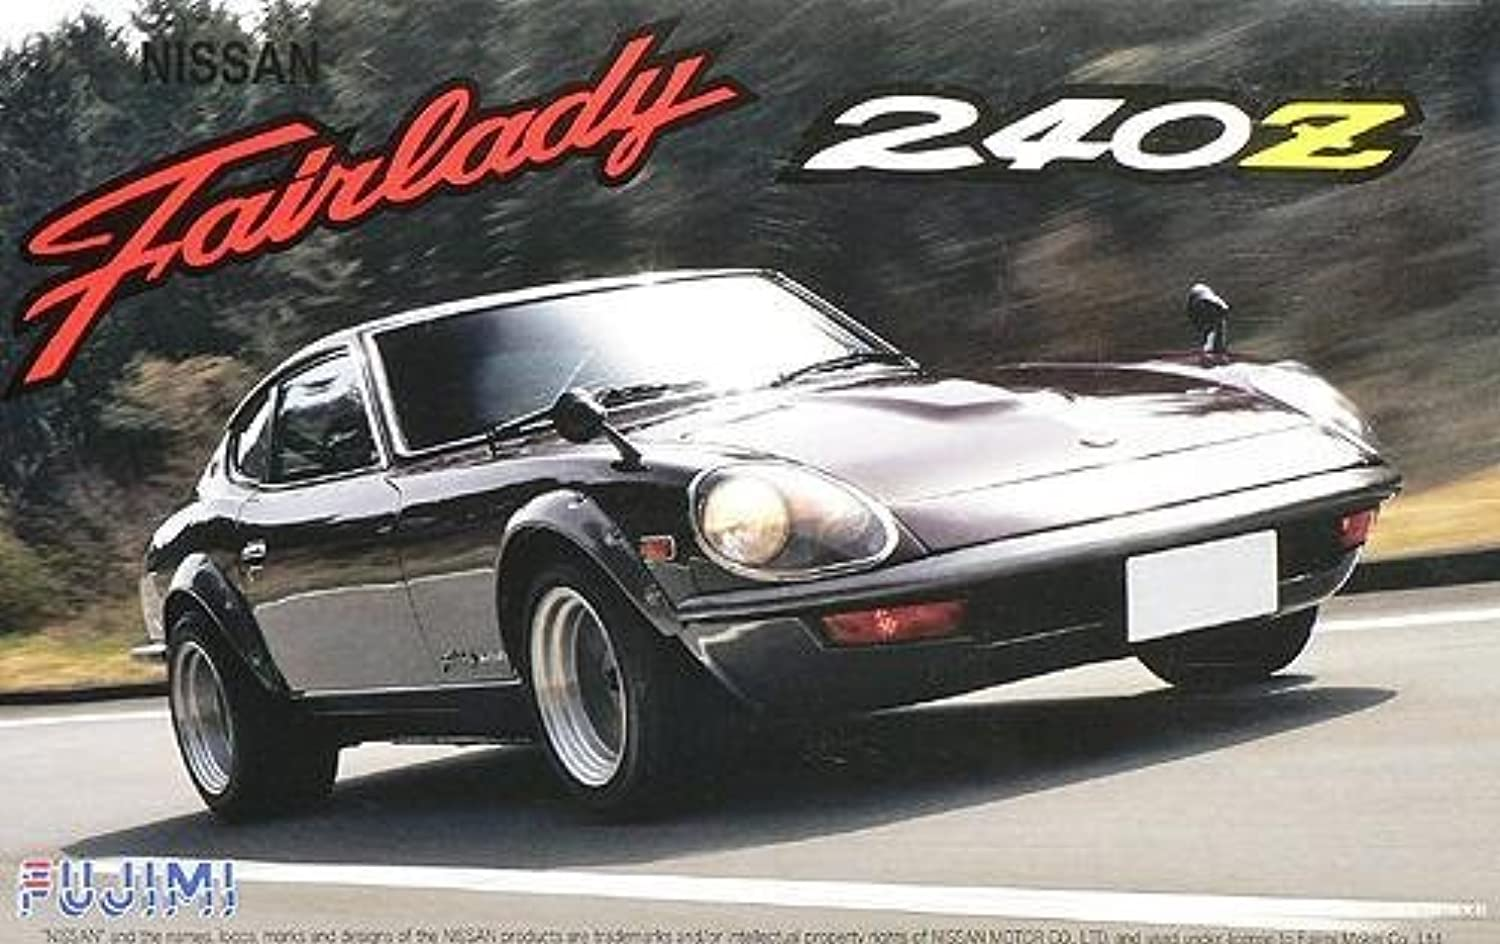 1 24 car SPOT series selfSP58 Fairlady 240ZG vehicle package